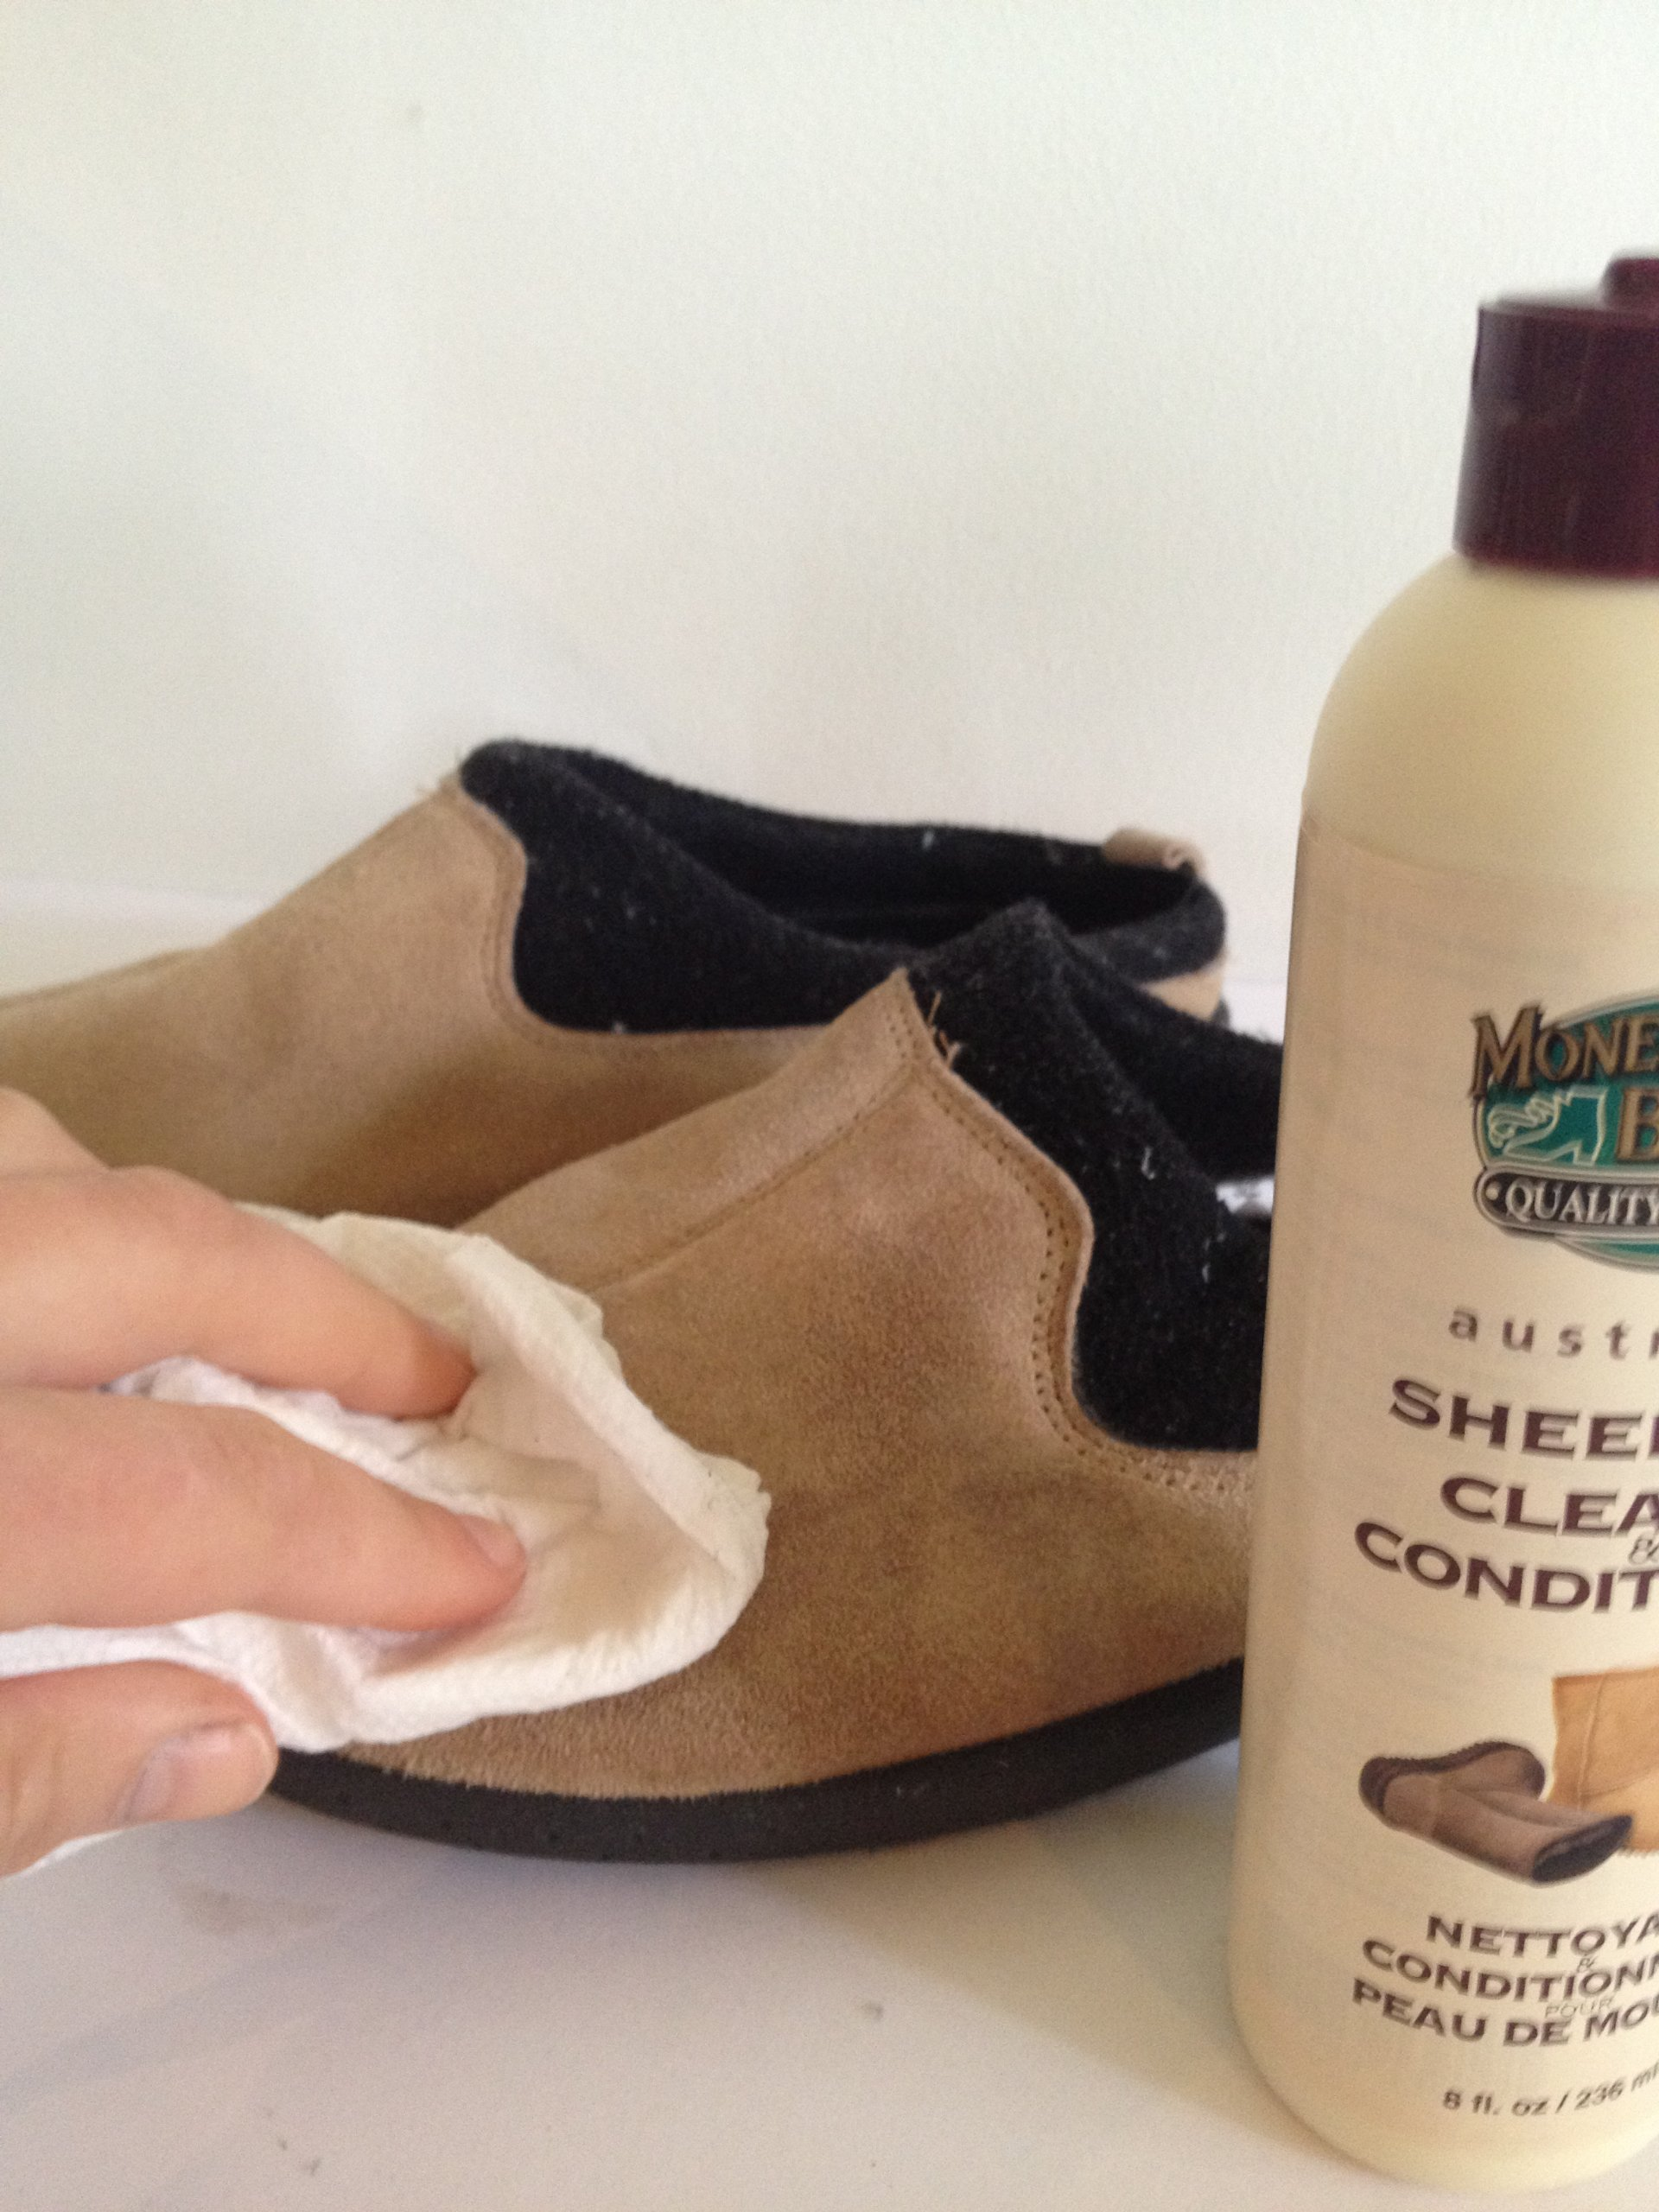 Moneysworth & Best Sheepskin Cleaner & Conditioner by Moneysworth and Best Shoe Care INC.